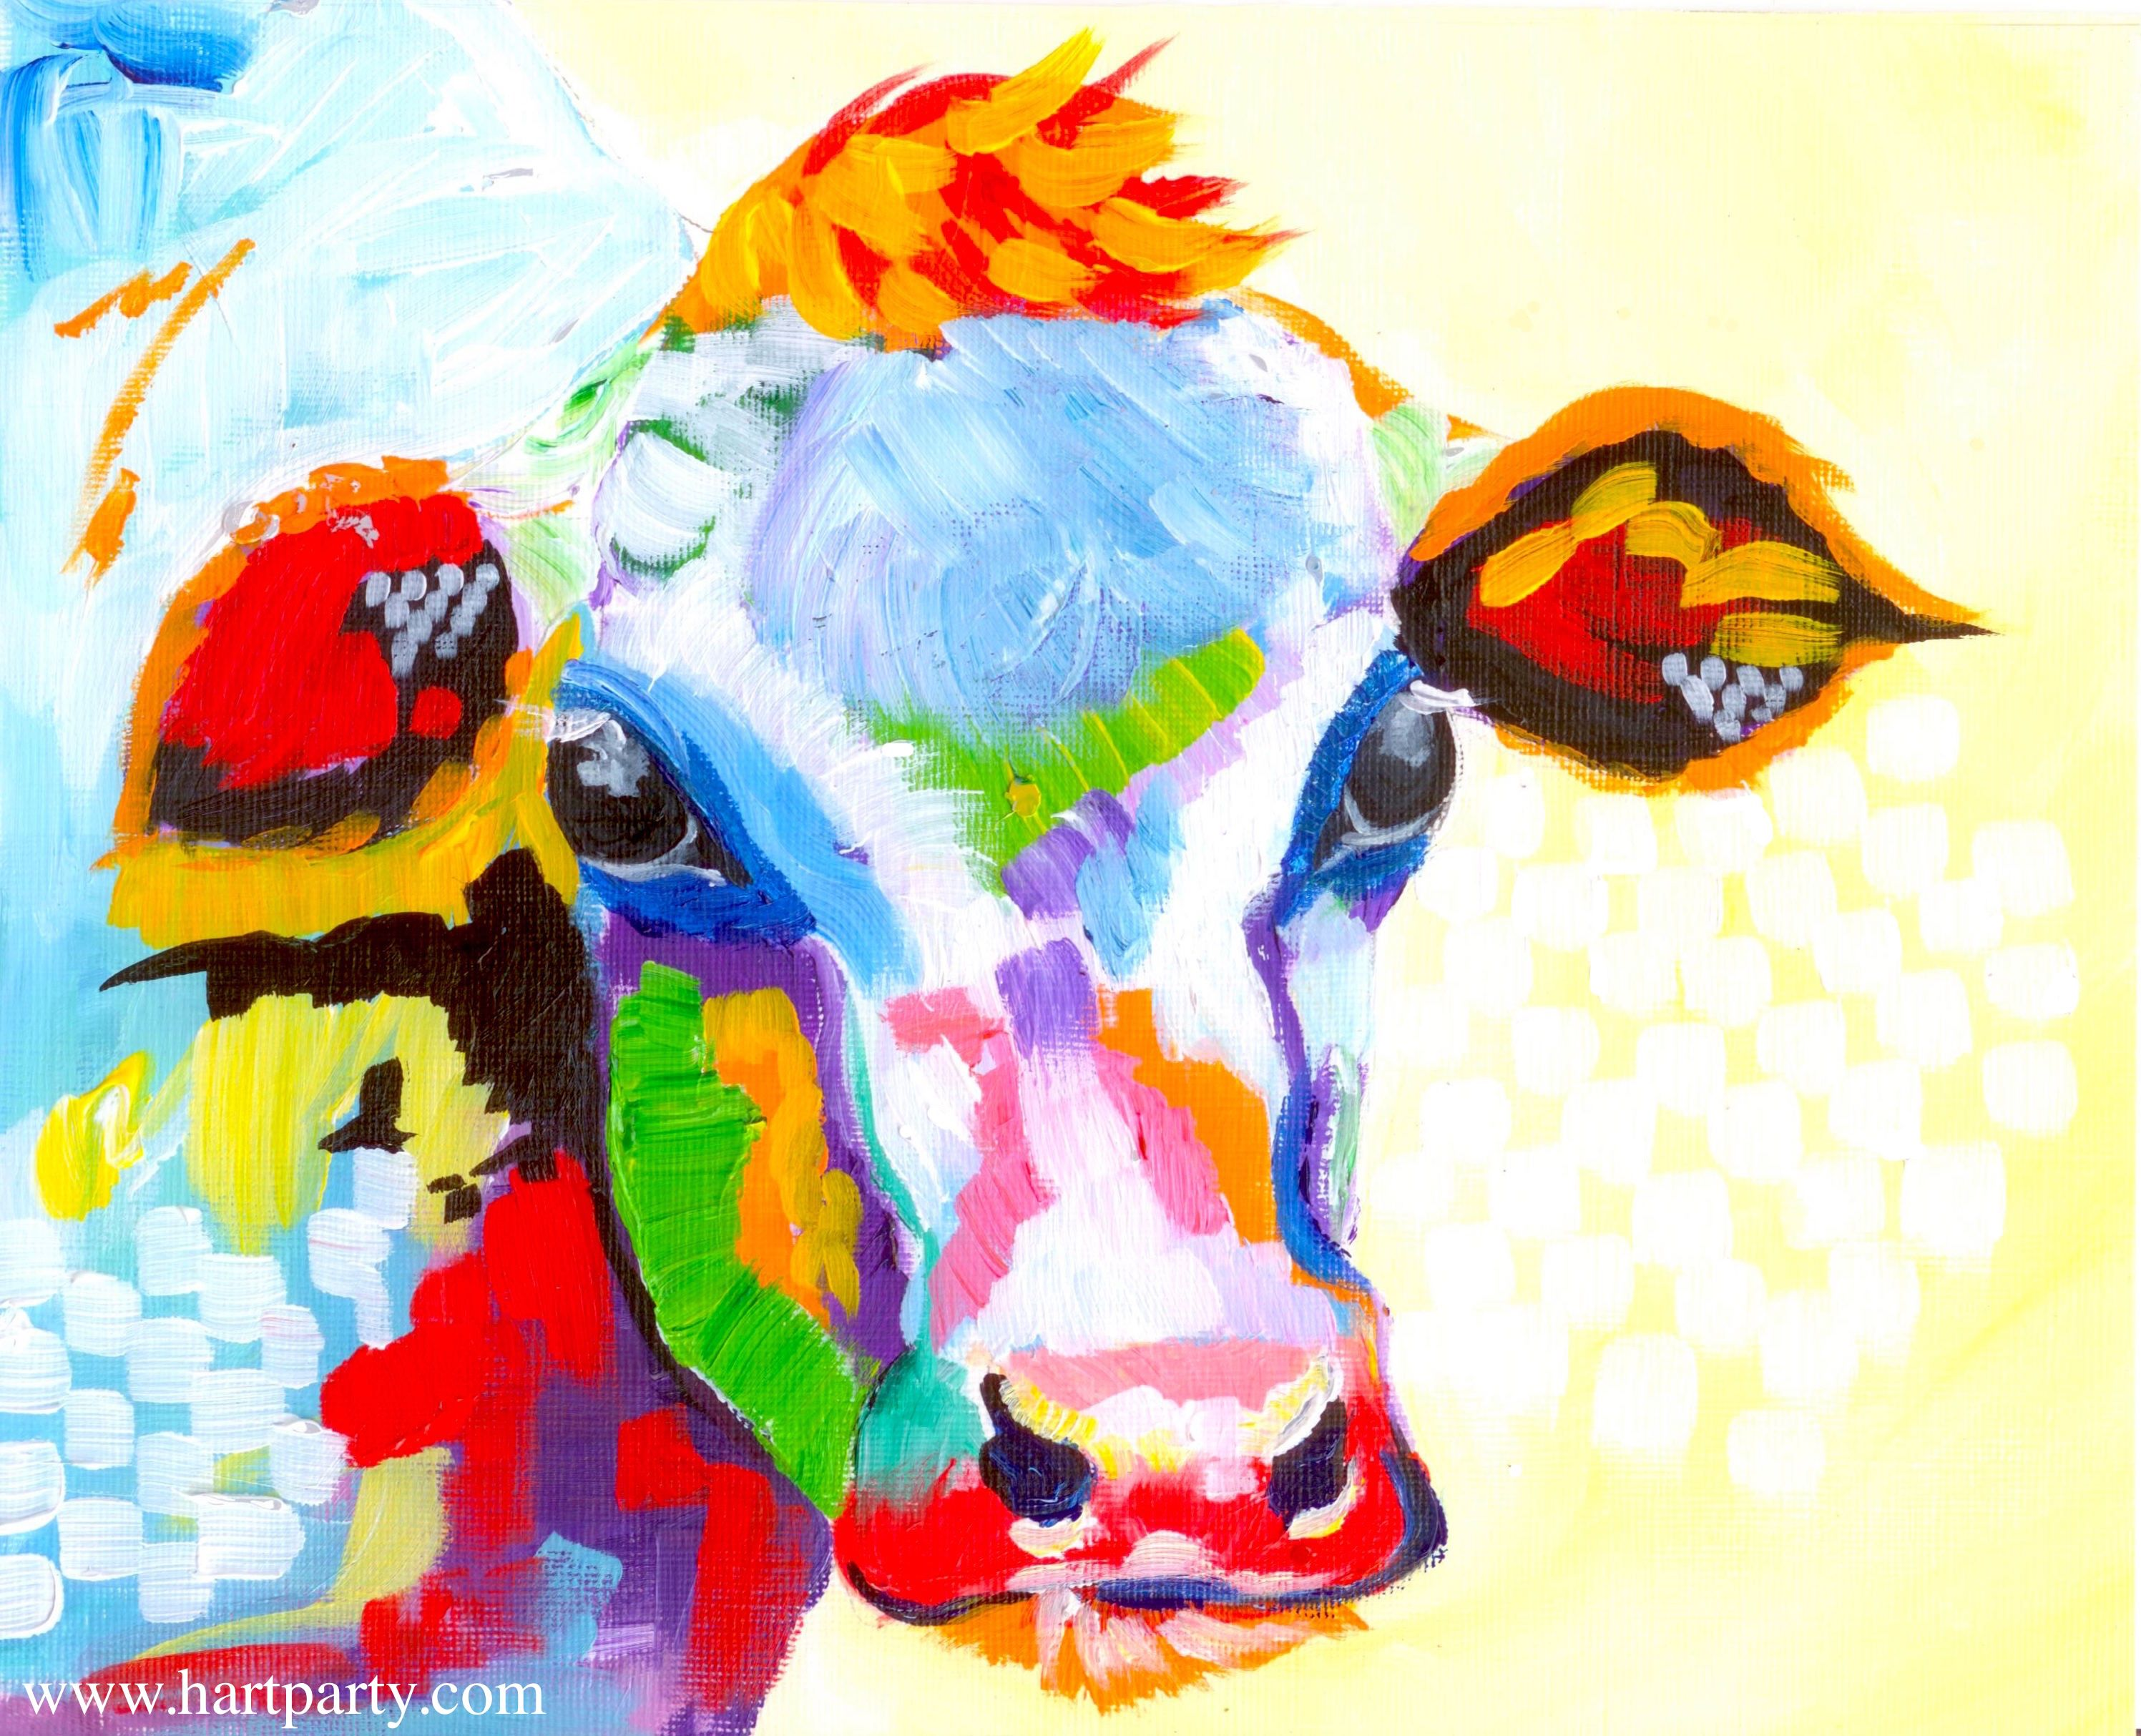 Colorful Cow Painting Acrylic Tutorial Beginner Abstract Lesson By The Art Sherpa For Youtube Cow Painting Abstract Art Lesson The Art Sherpa